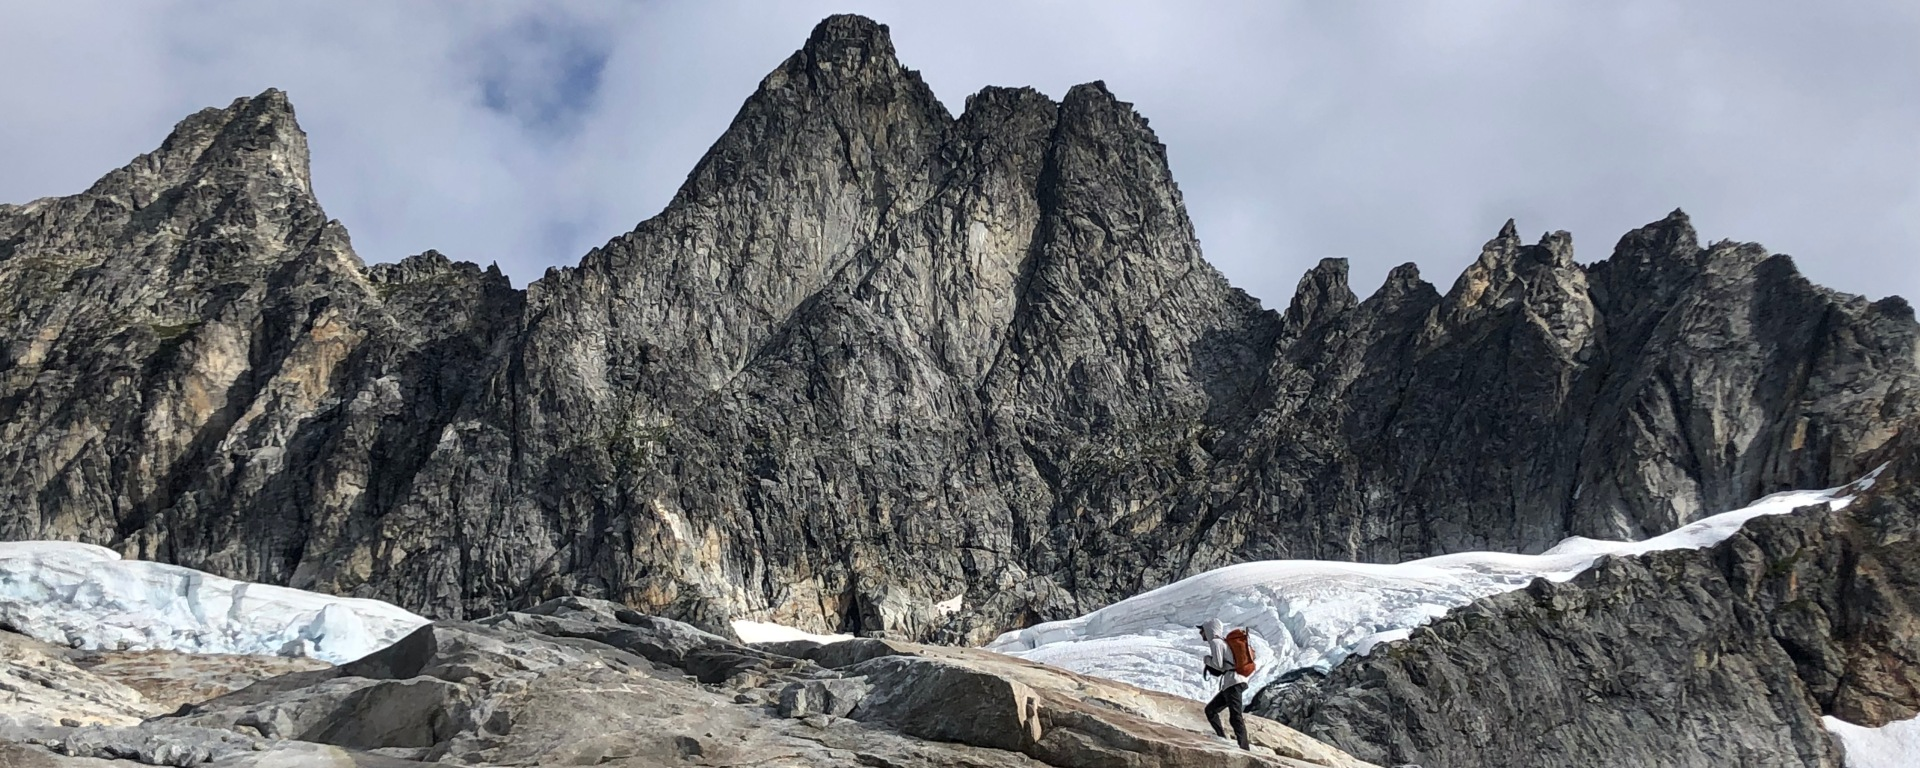 approach, southern pickets, picket range, skagit, pnw, alpinism, moutaineering, east ridge